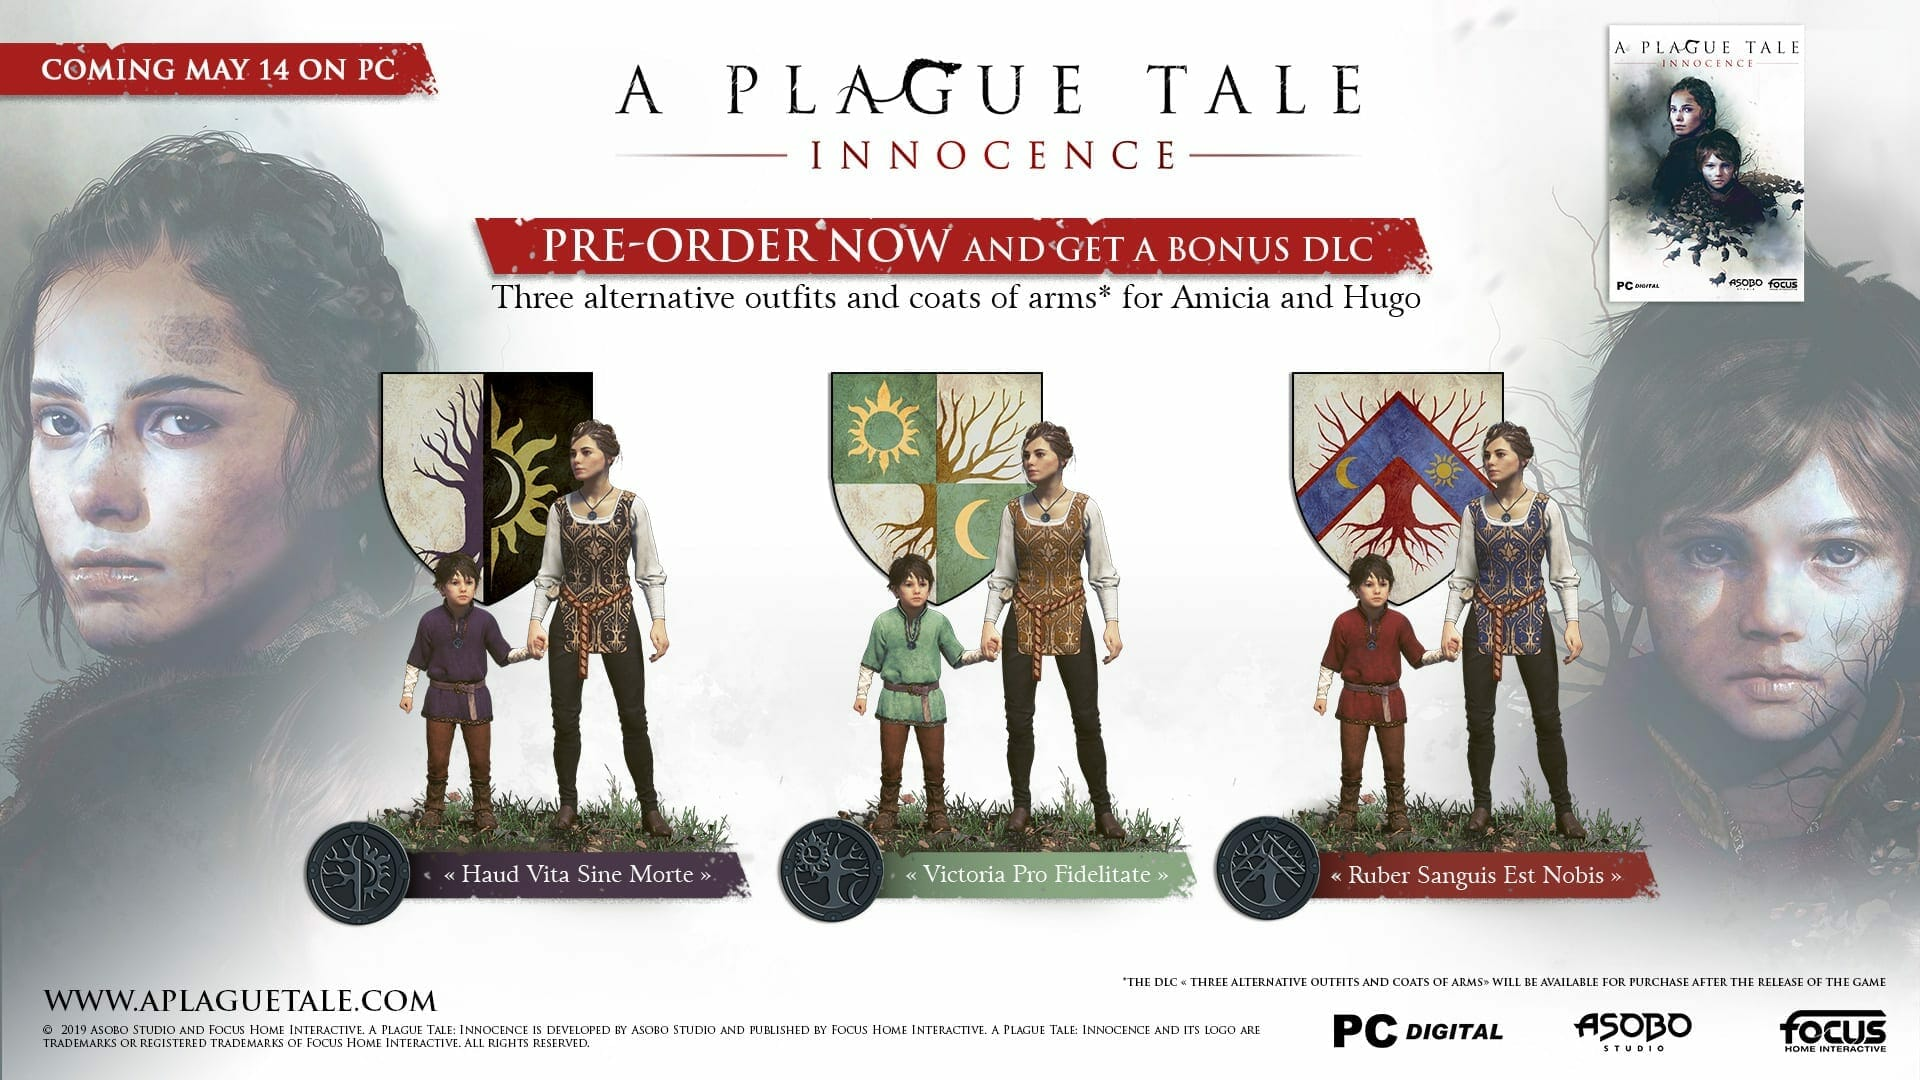 A Plague Tale Innocence Pre Order Bonuses - A Plague Tale: Innocence Pre-Order Bonus for Steam, PS4 and Xbox One